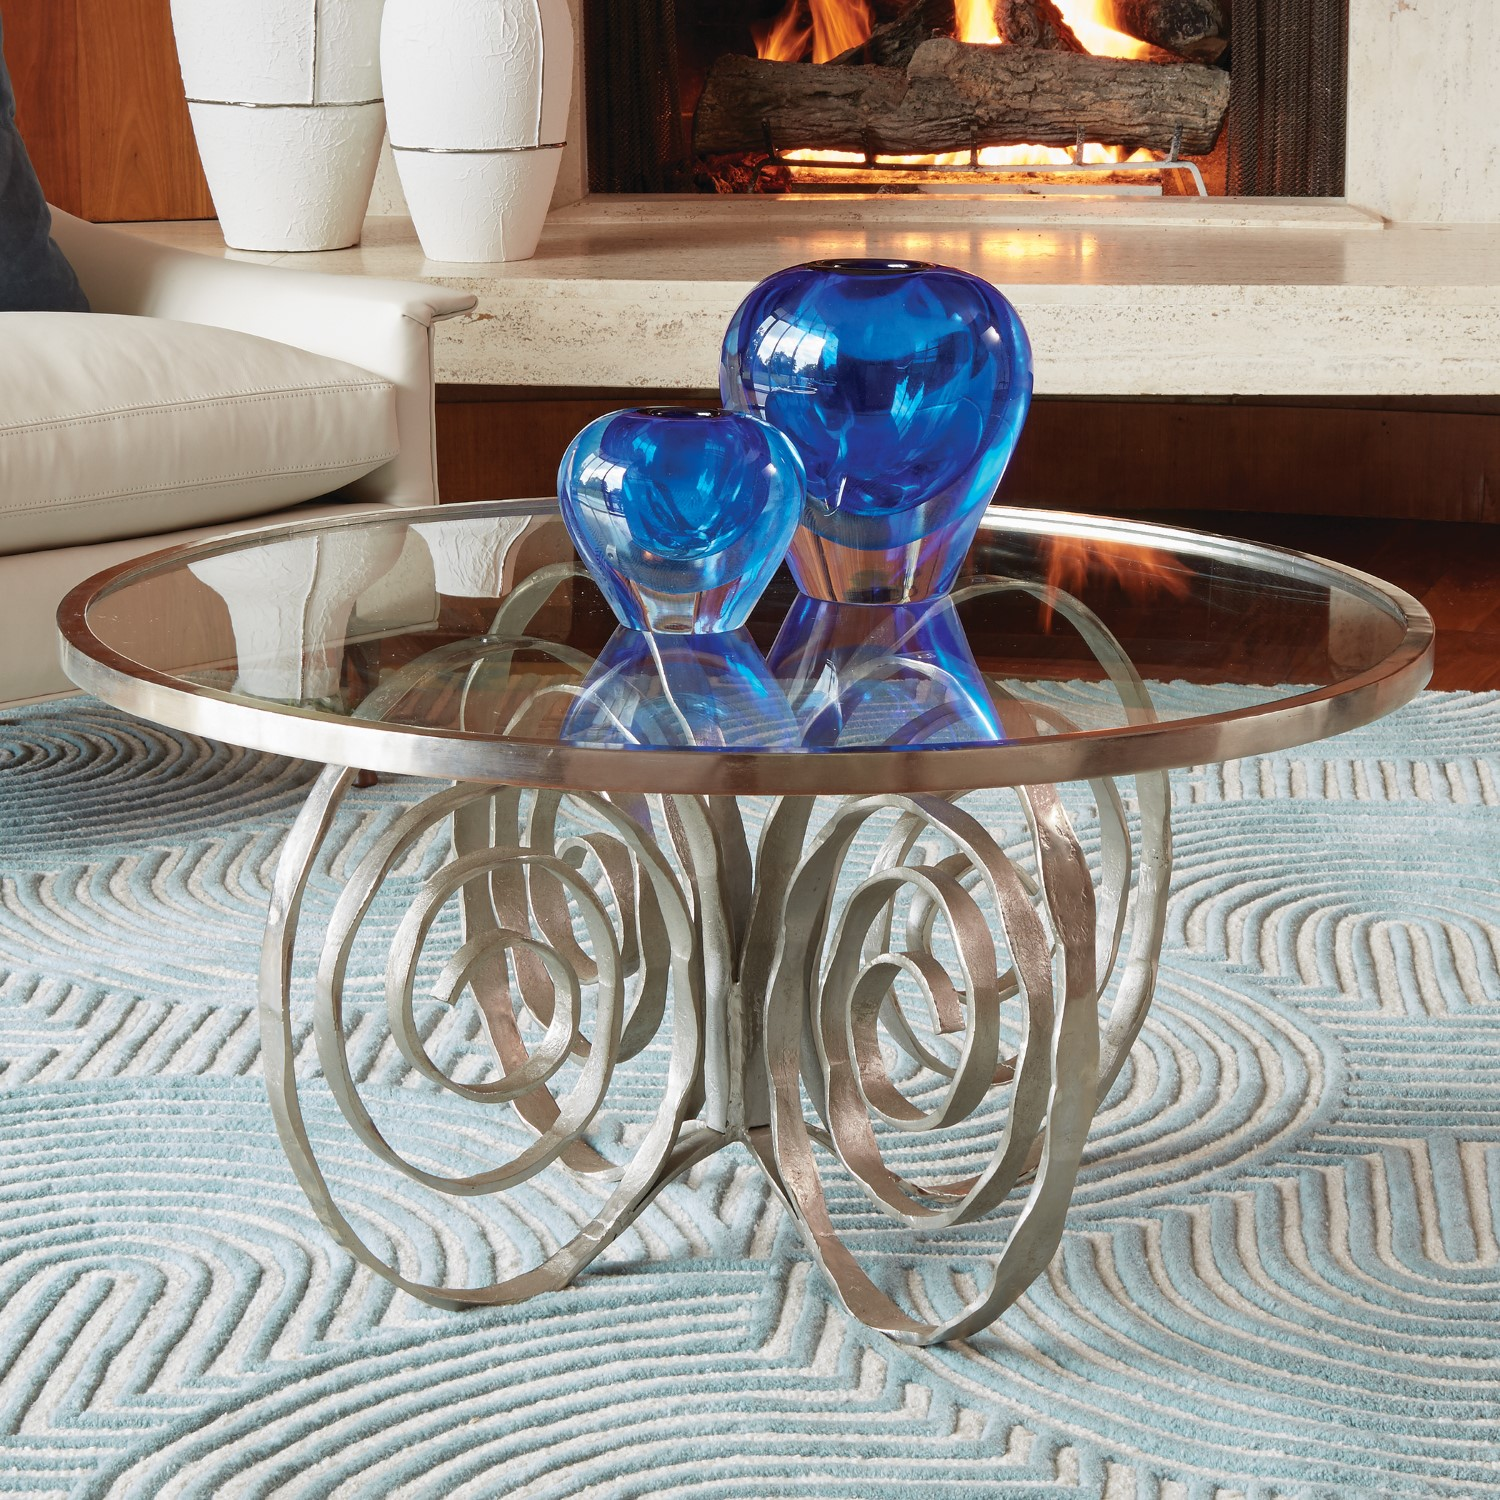 Spirals Cocktail Table – $1,285.00